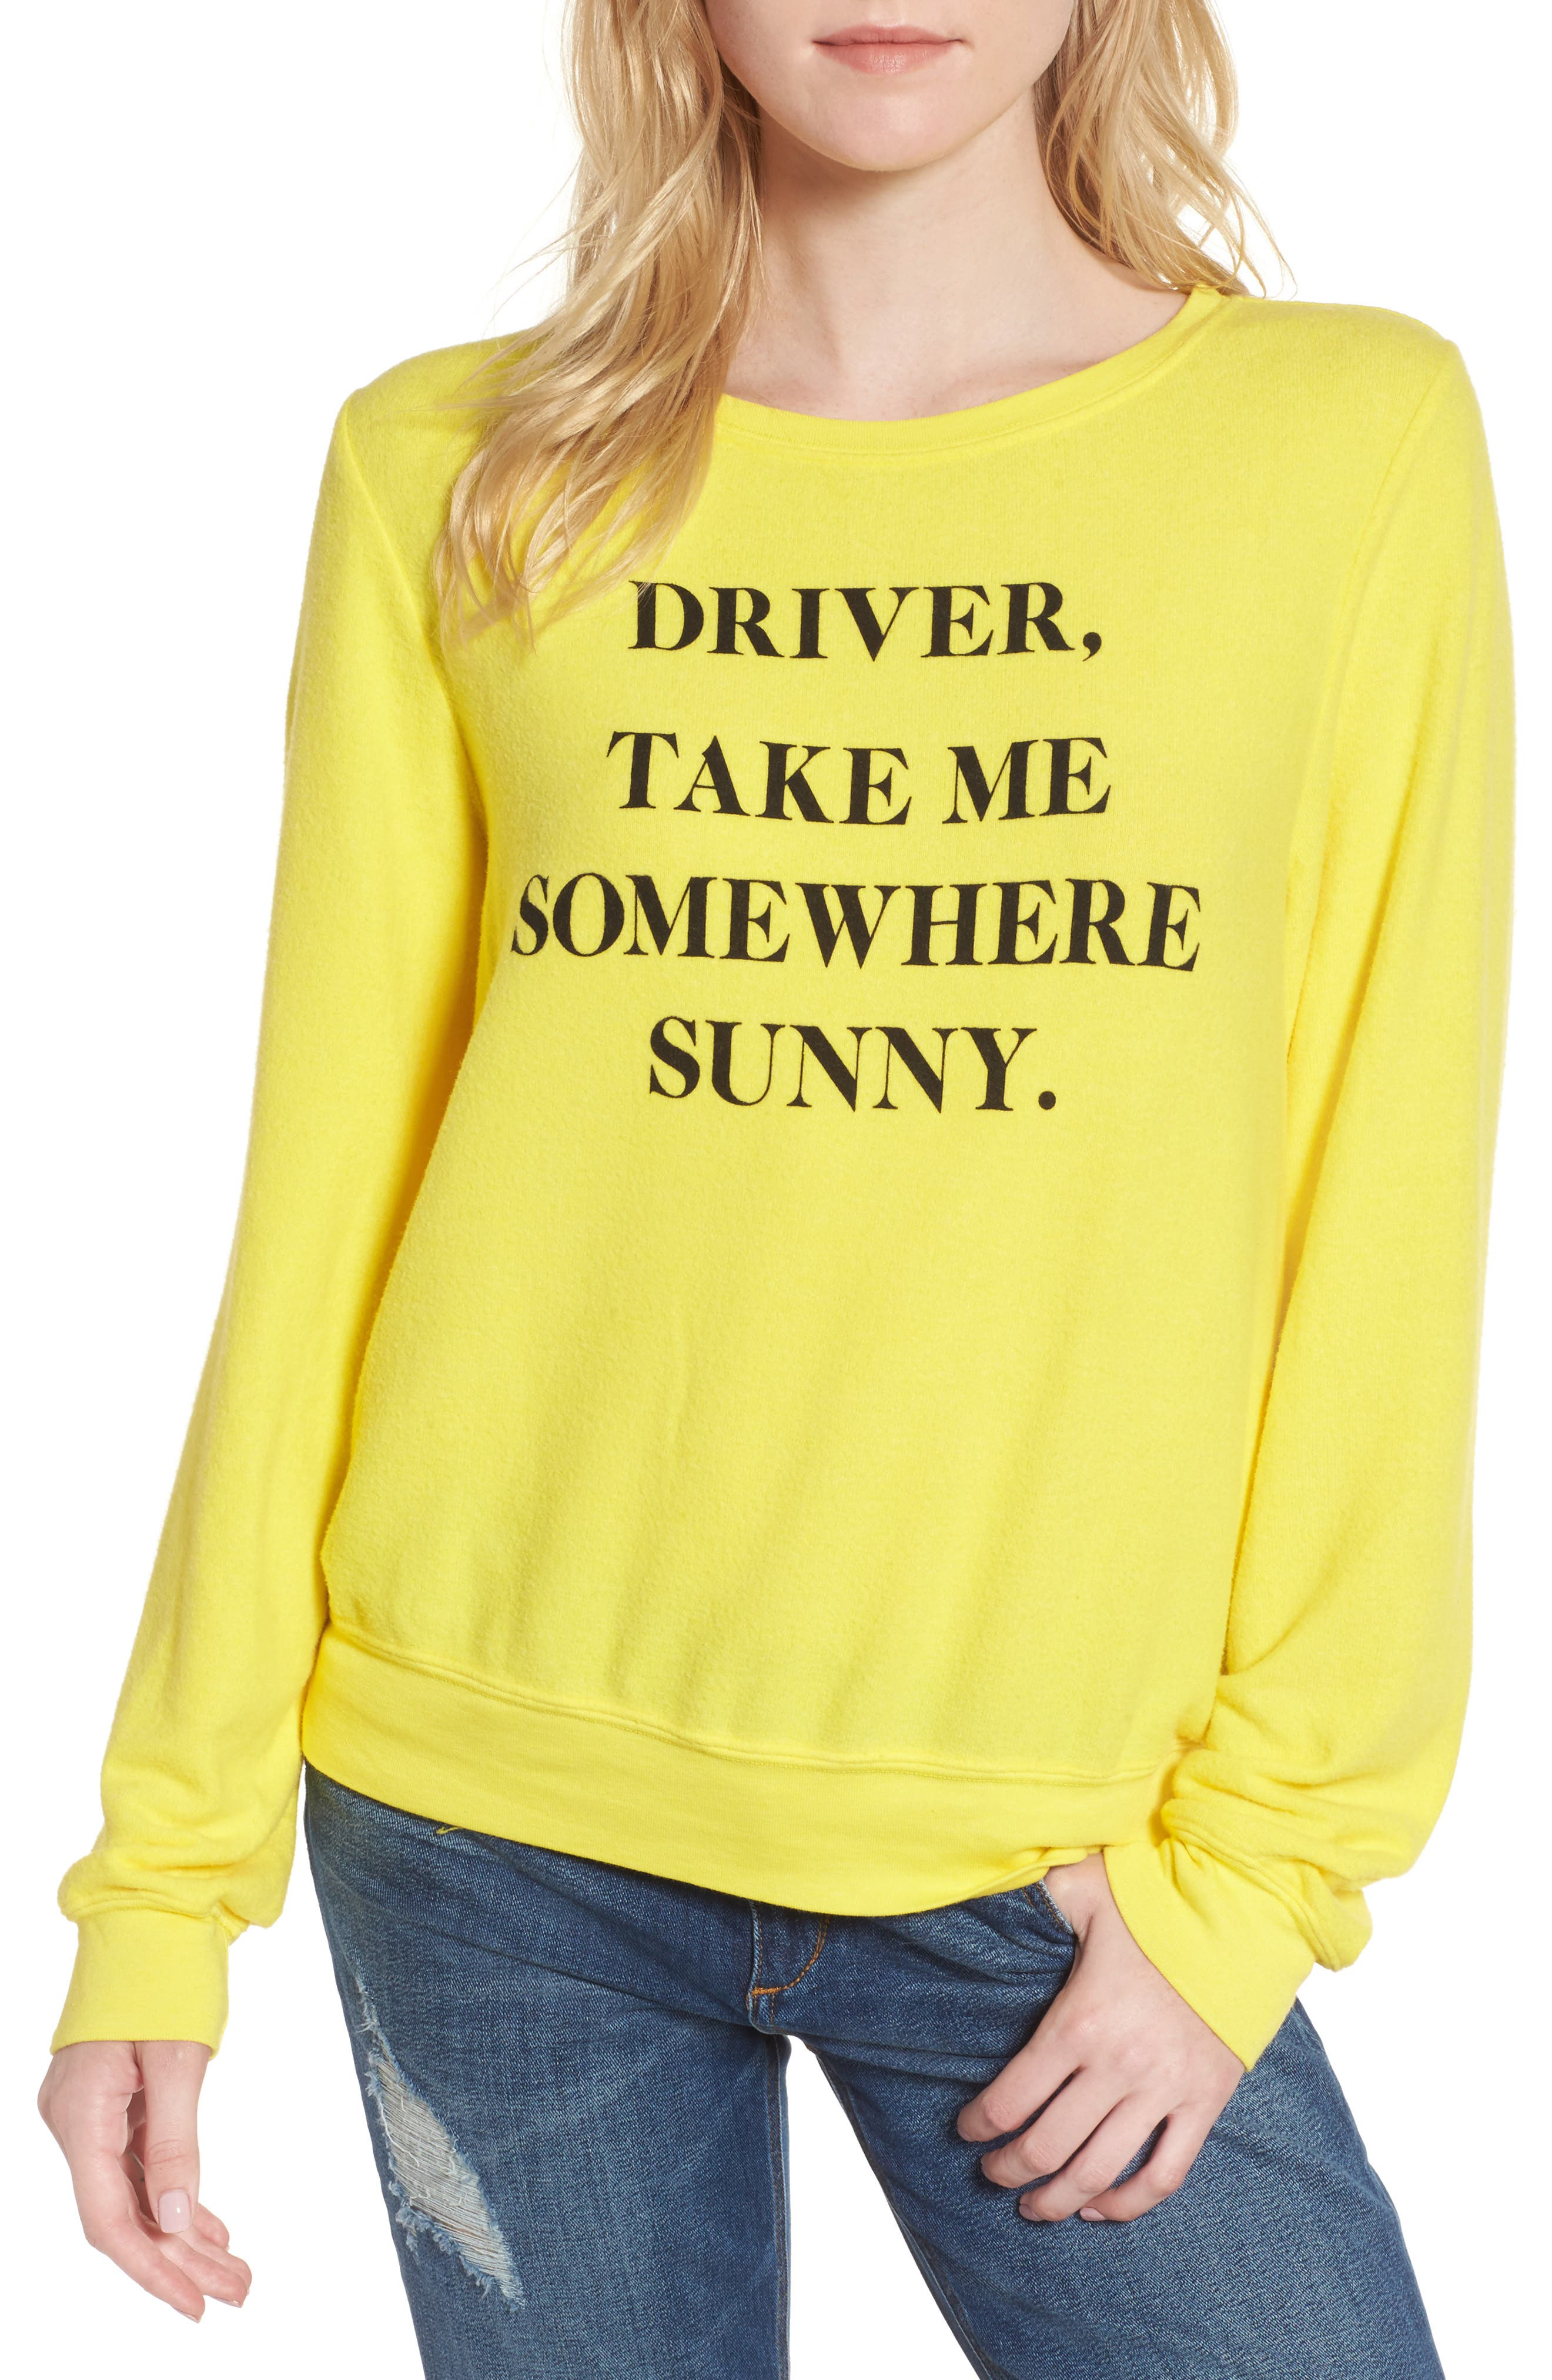 Main Image - Wildfox 'Somewhere Sunny' Sweatshirt